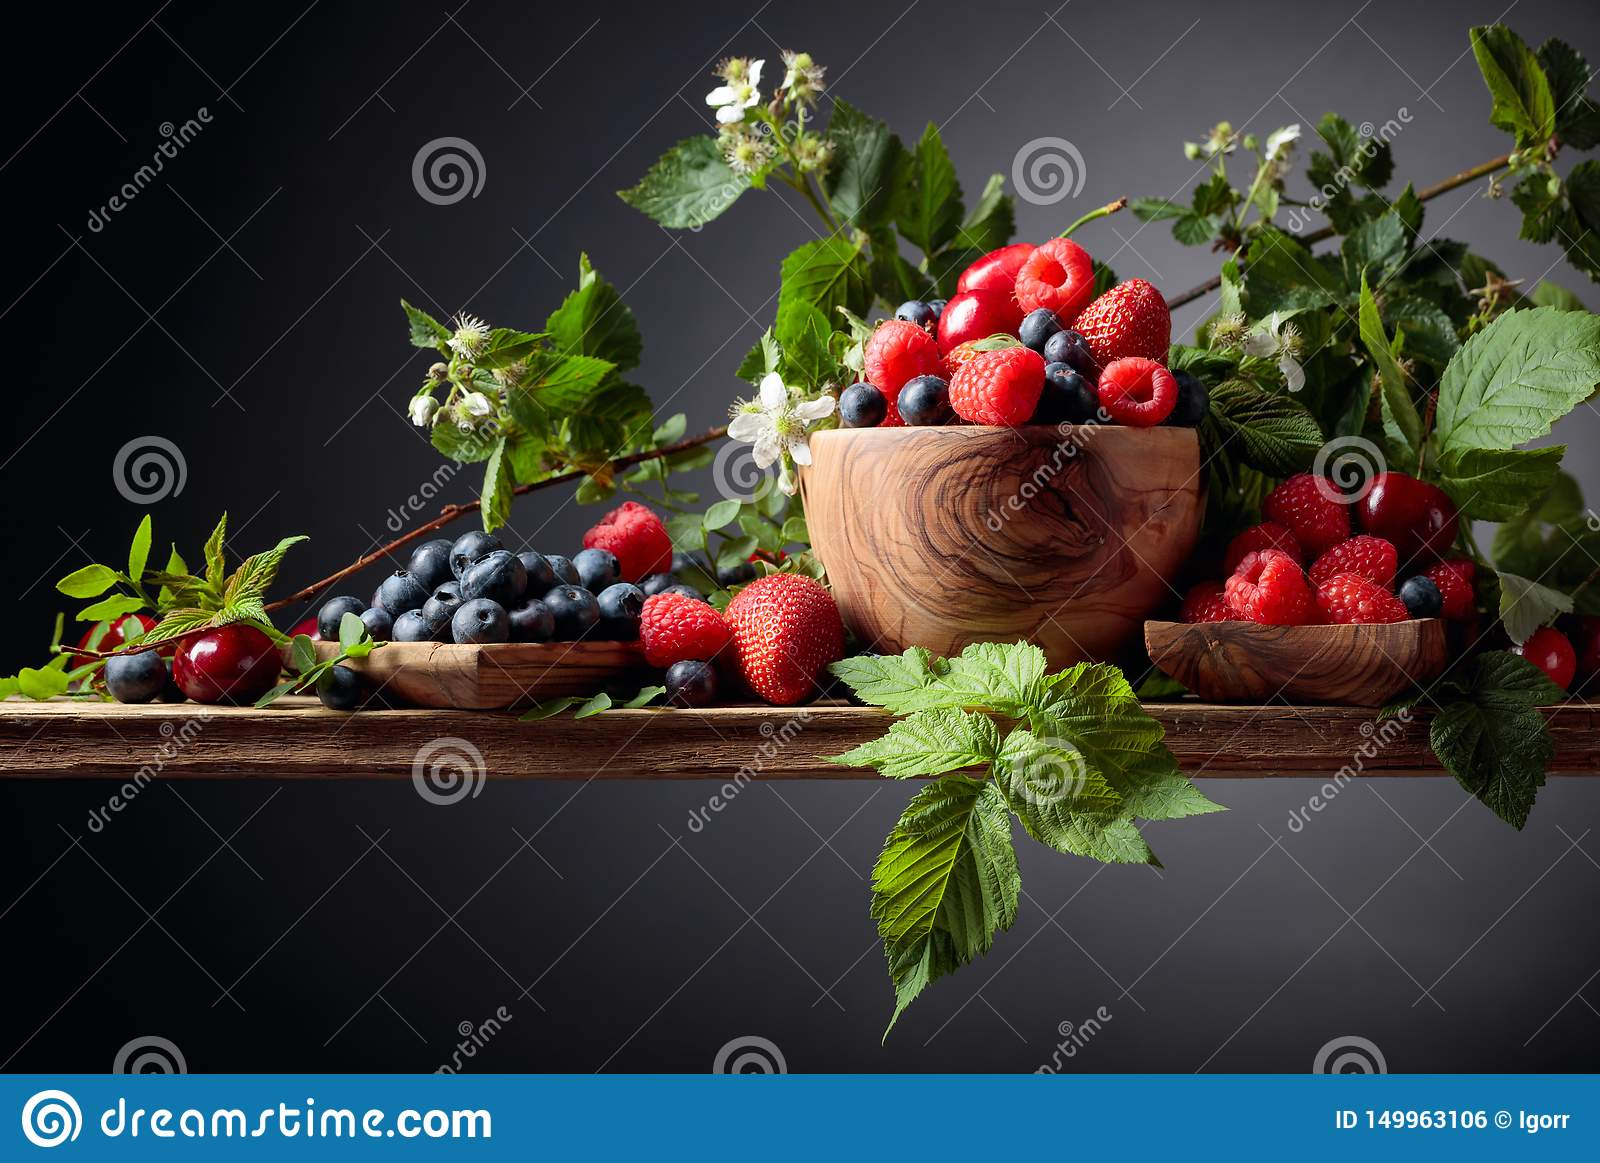 Berries closeup colorful assorted mix of strawberry, blueberry, raspberry and sweet cherry on a old wooden table